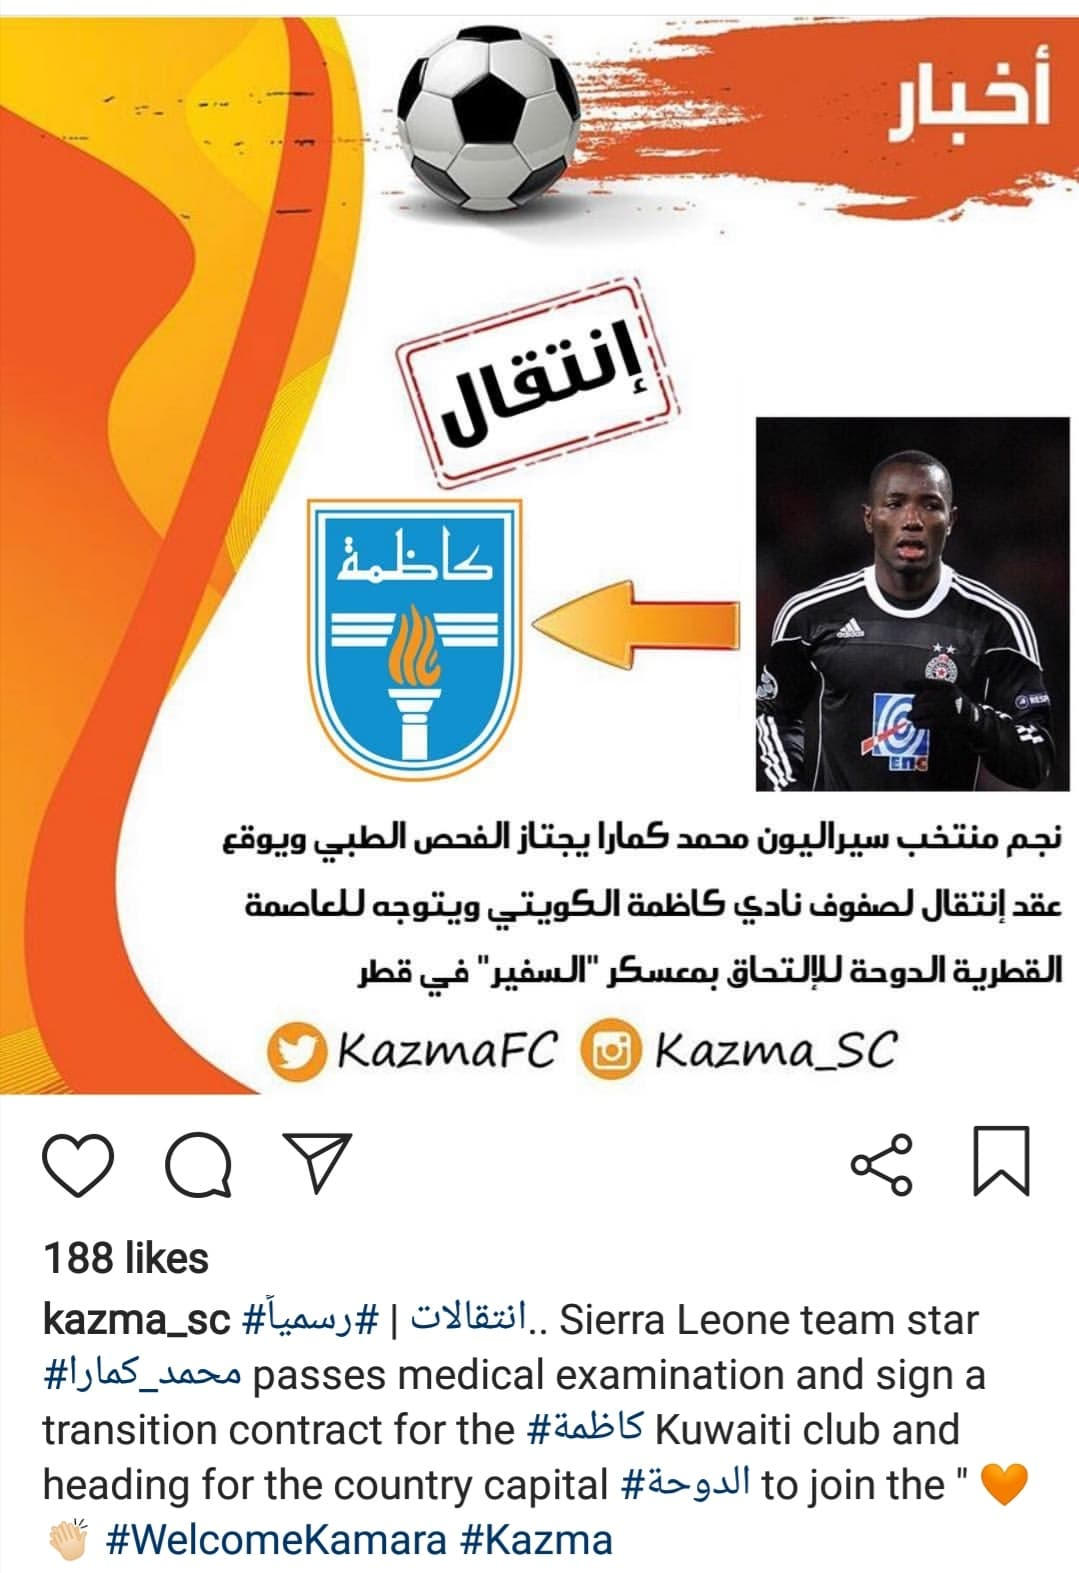 Kazma SC confirmed the news on their official Instagram page